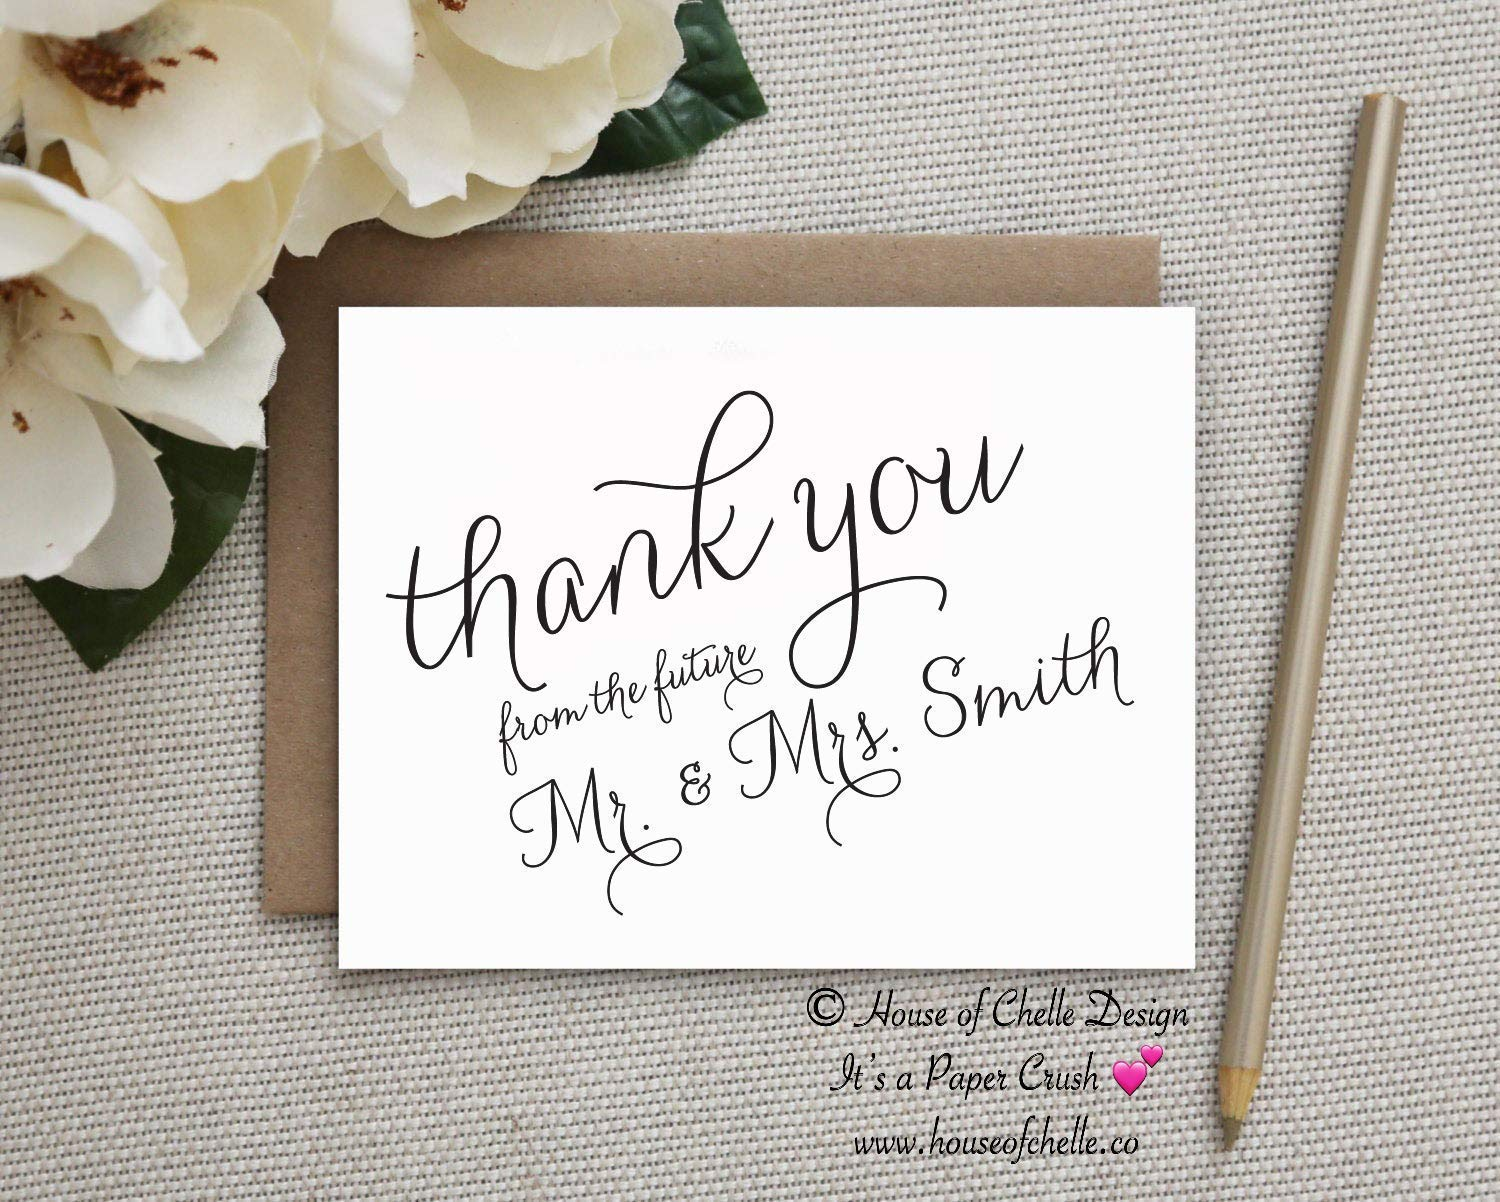 Personalized Wedding Thank You Cards Thank You Cards For Wedding. Custom Wedding Thank You Cards Personalized Mr and Mrs Thank You Cards